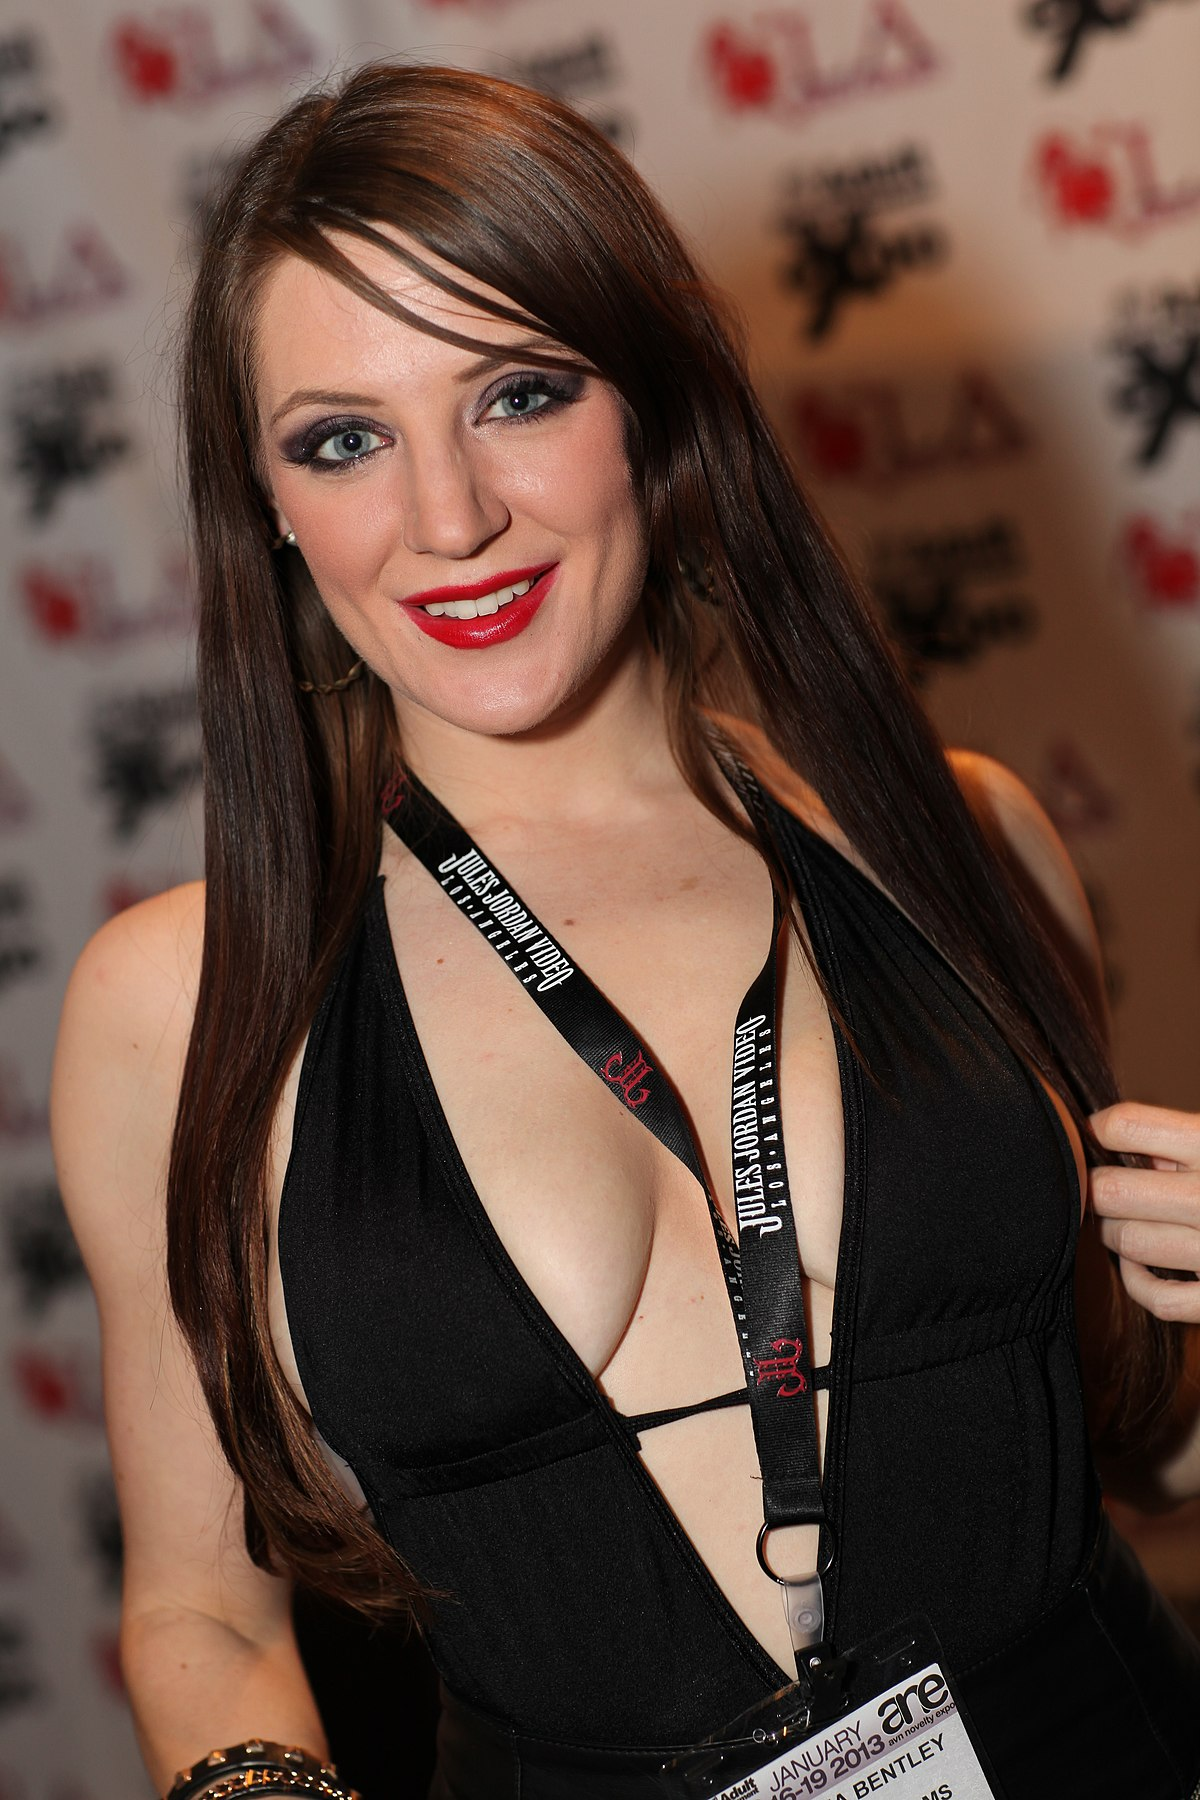 http://upload.wikimedia.org/wikipedia/commons/thumb/0/08/Samantha_Bentley_AEE_2013_1.jpg/1200px-Samantha_Bentley_AEE_2013_1.jpg